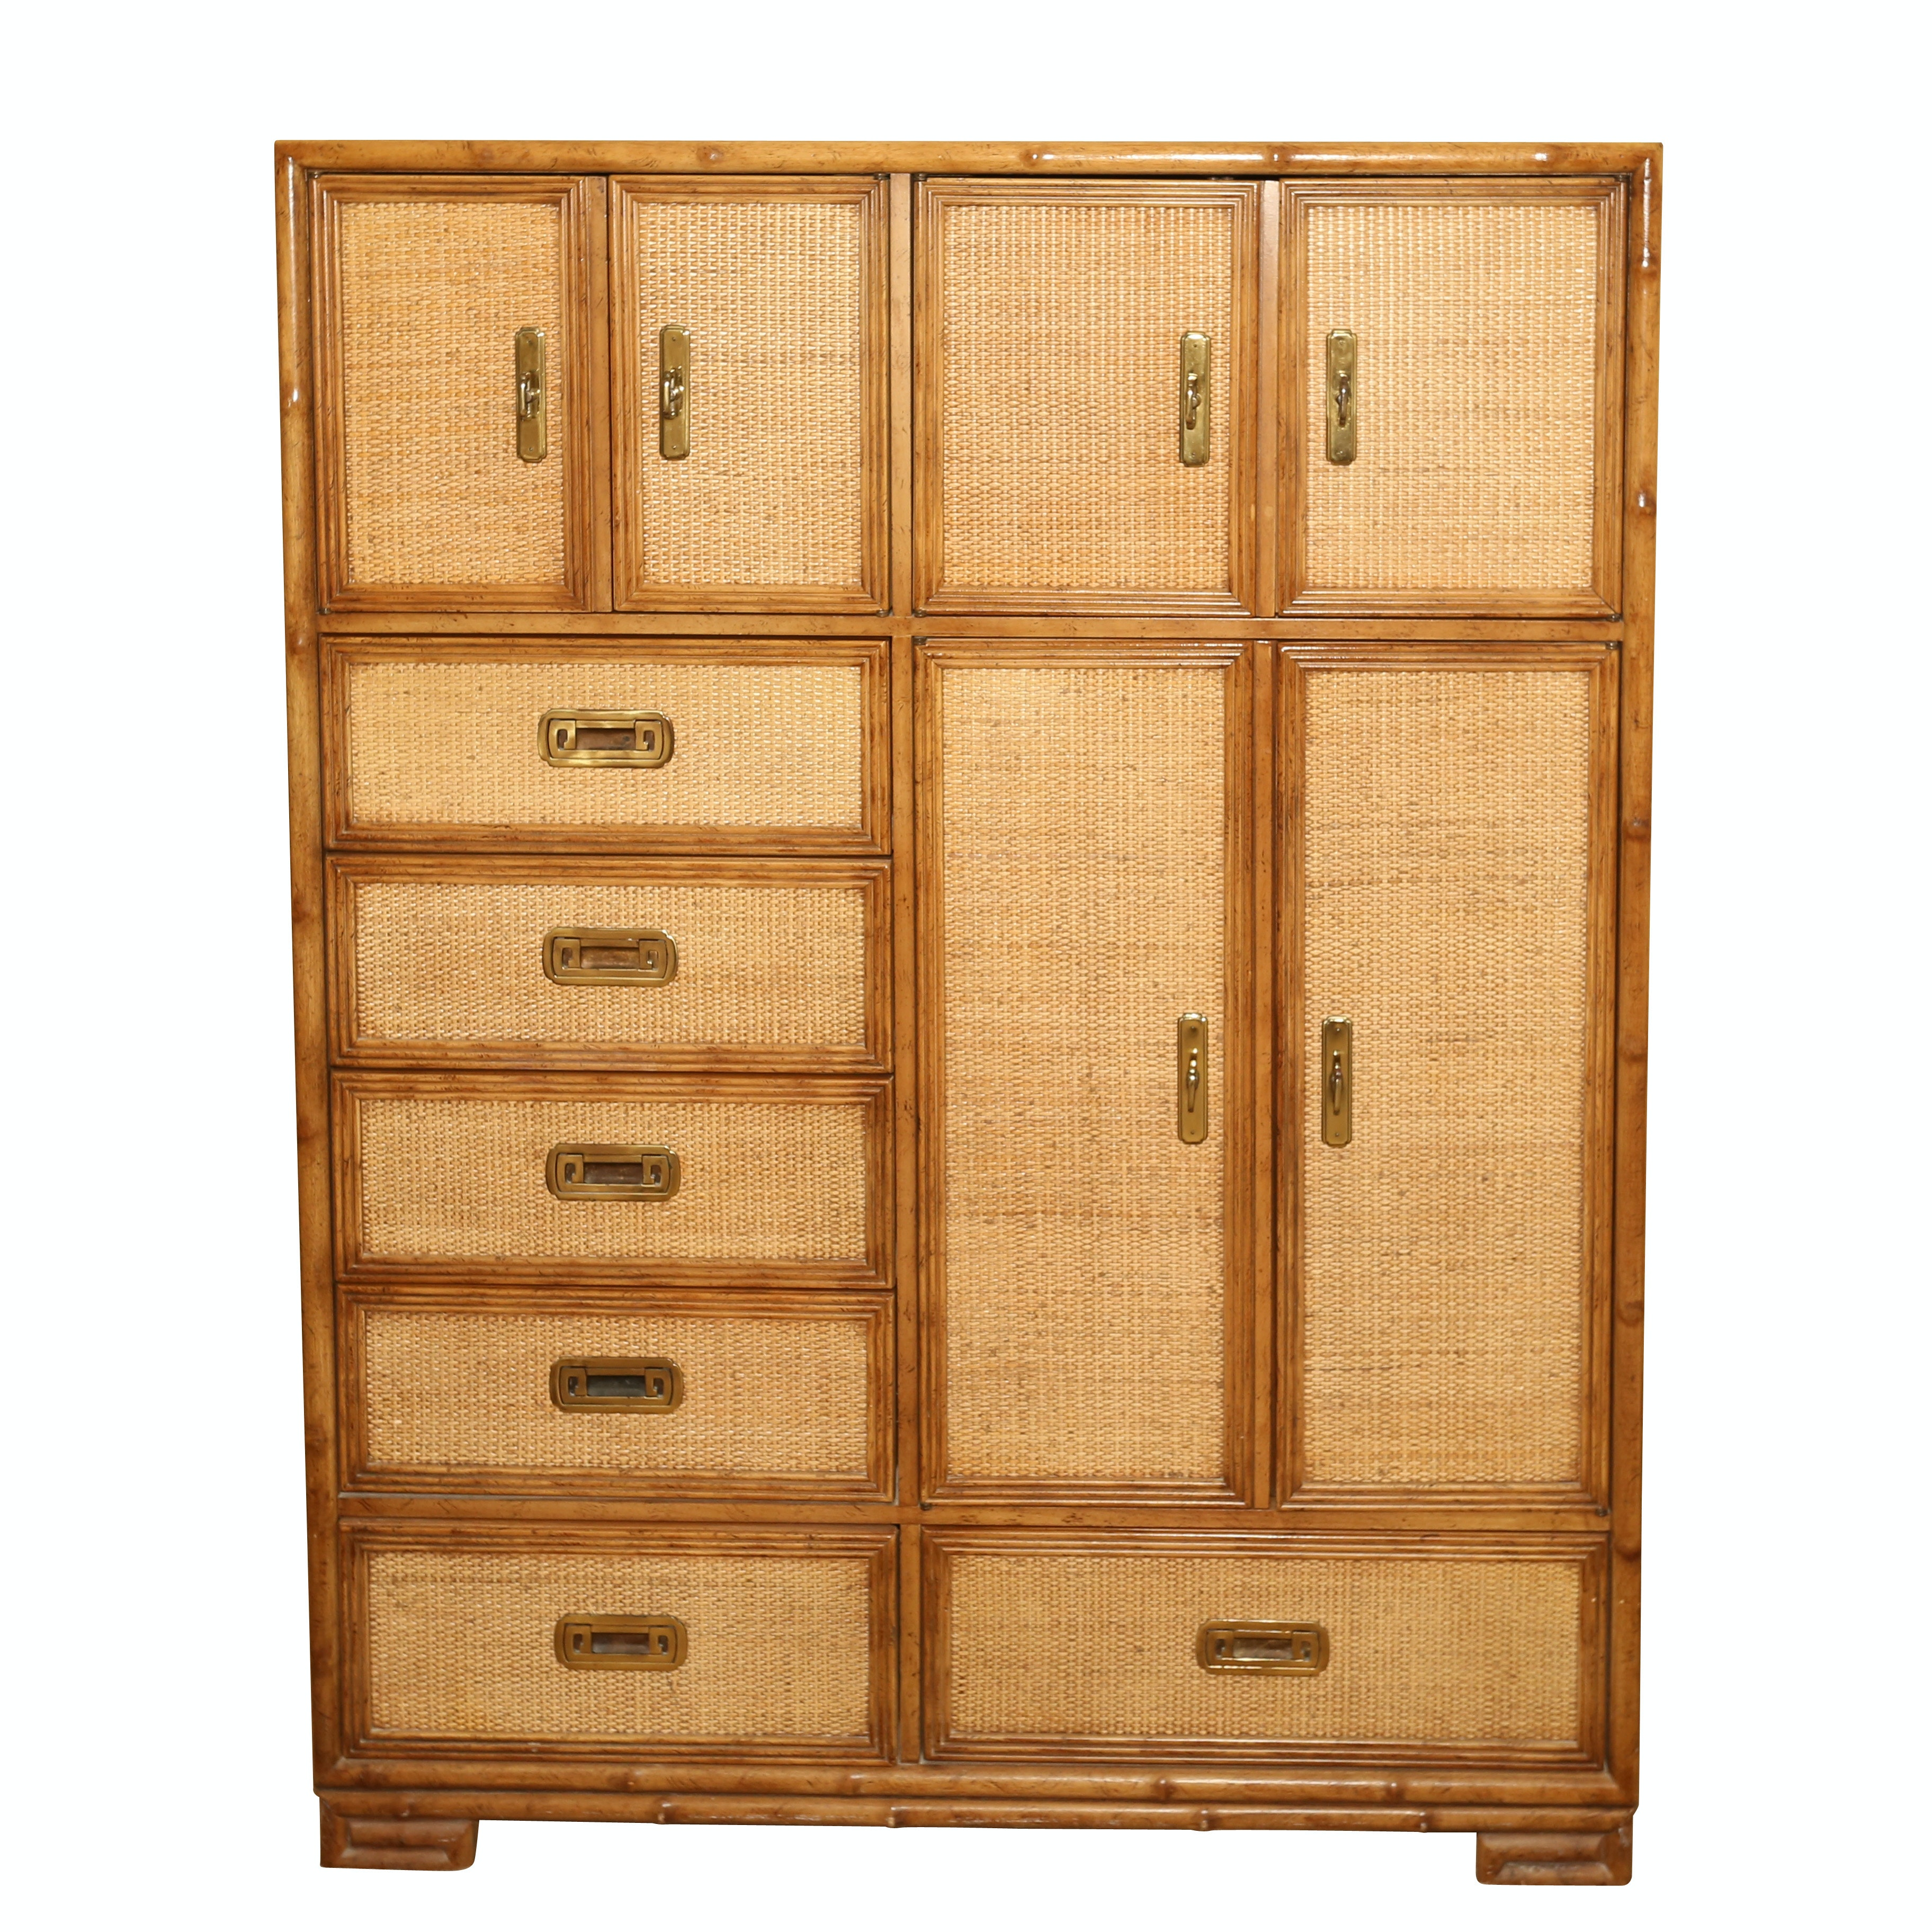 Captiva Collection Faux Bamboo Wood Dresser by Drexel, Mid-20th Century